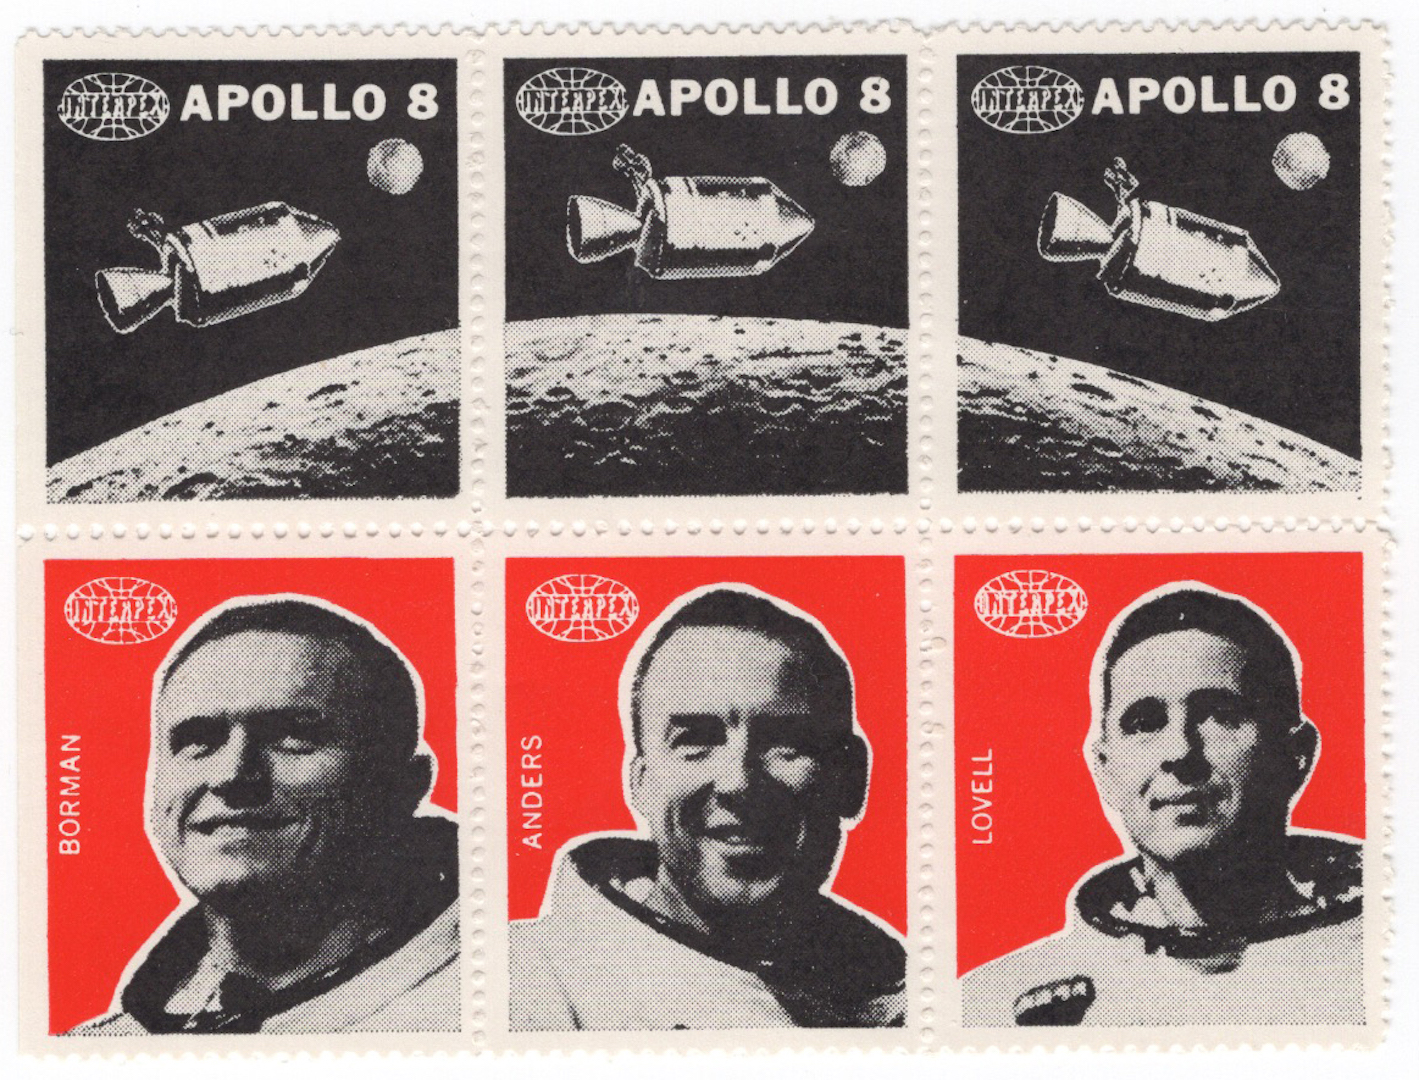 ERM-XXXX-STAMPS-BORMAN_ANDERS_LOVELL-BLACK_RED.jpg